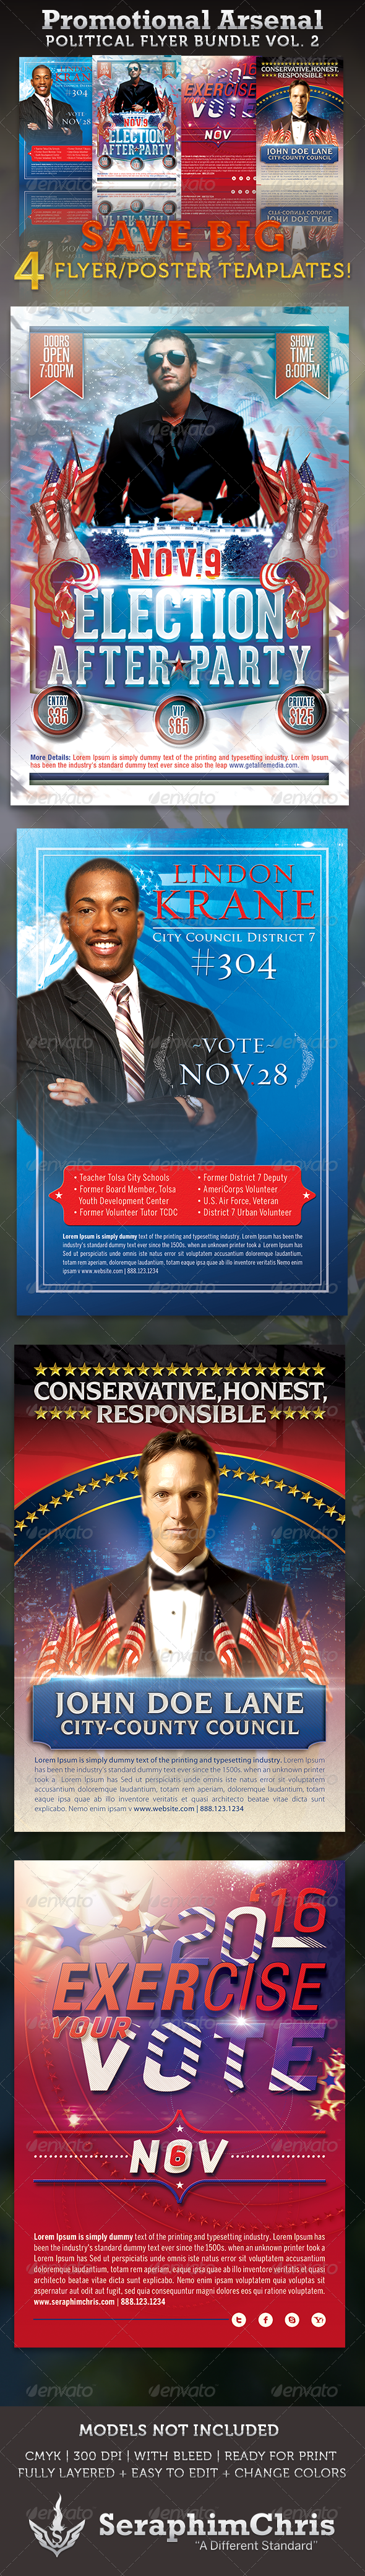 Promotional Arsenal Political Flyer Bundle 2 - Corporate Flyers